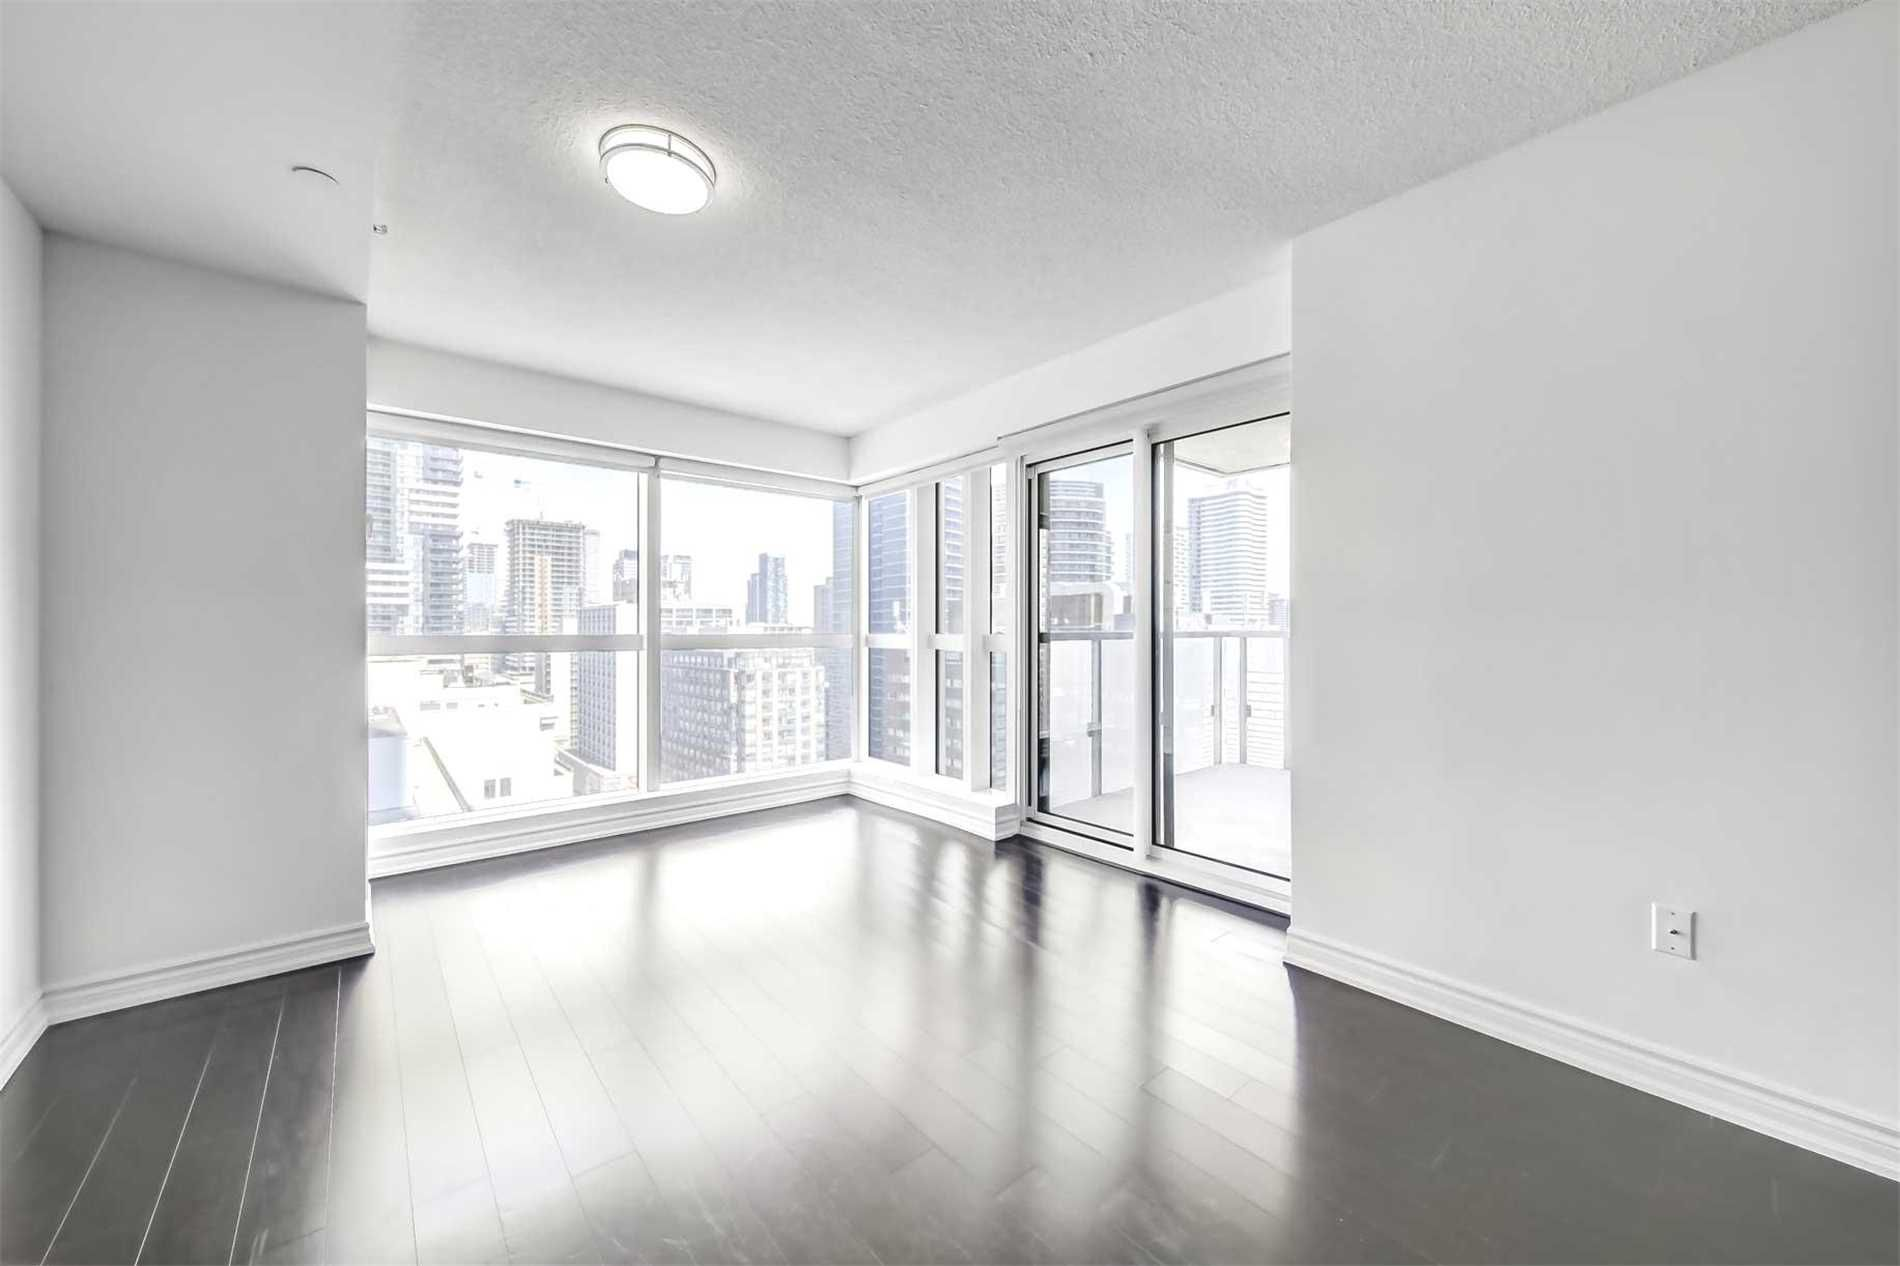 386 Yonge St, unit 1801 for rent in Toronto - image #2